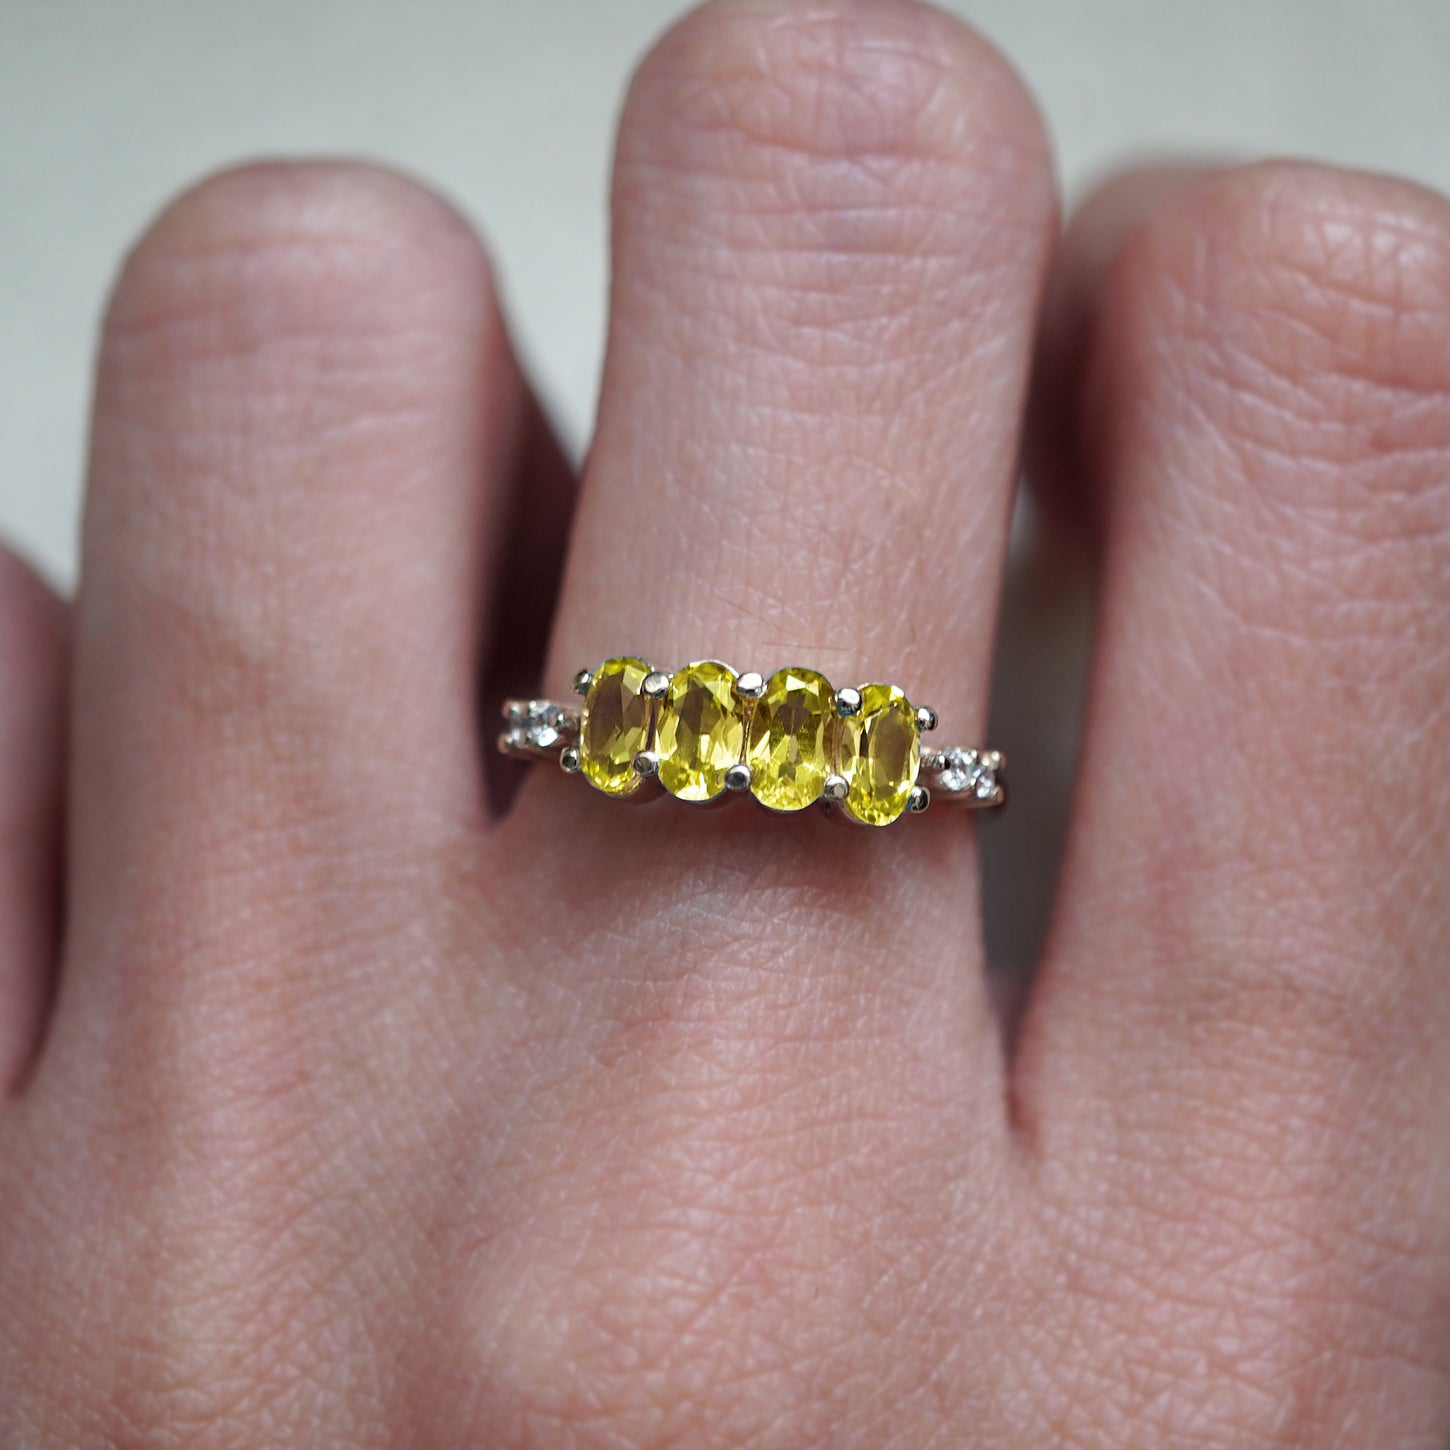 November Citrine Ring - Tippy Taste Jewelry